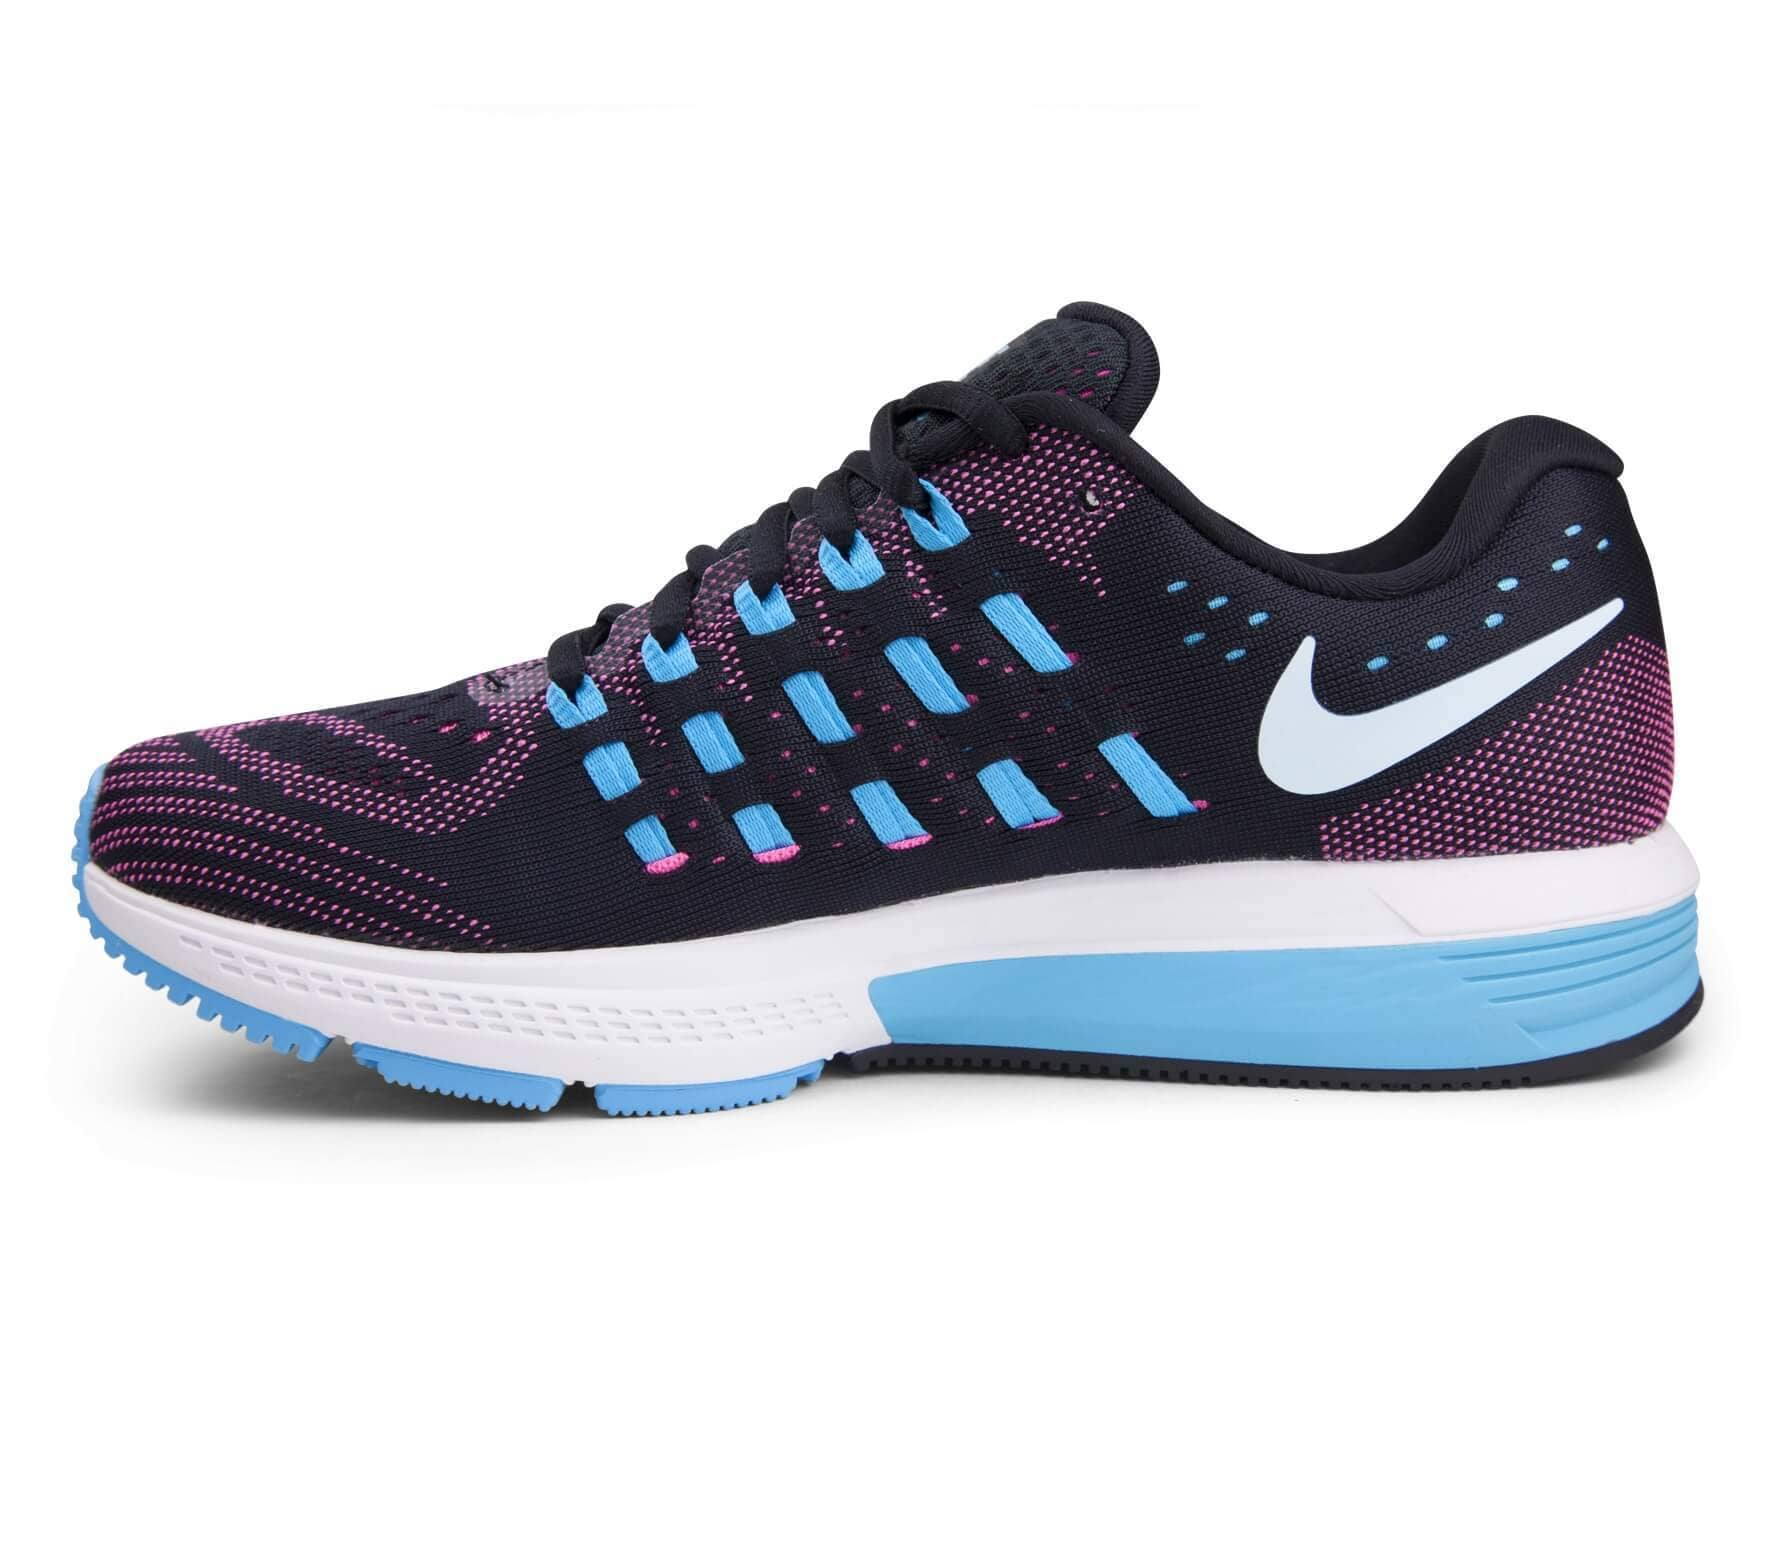 fbdda827596ce5 Nike - Air Zoom Vomero 11 women s running shoes (black light blue ...